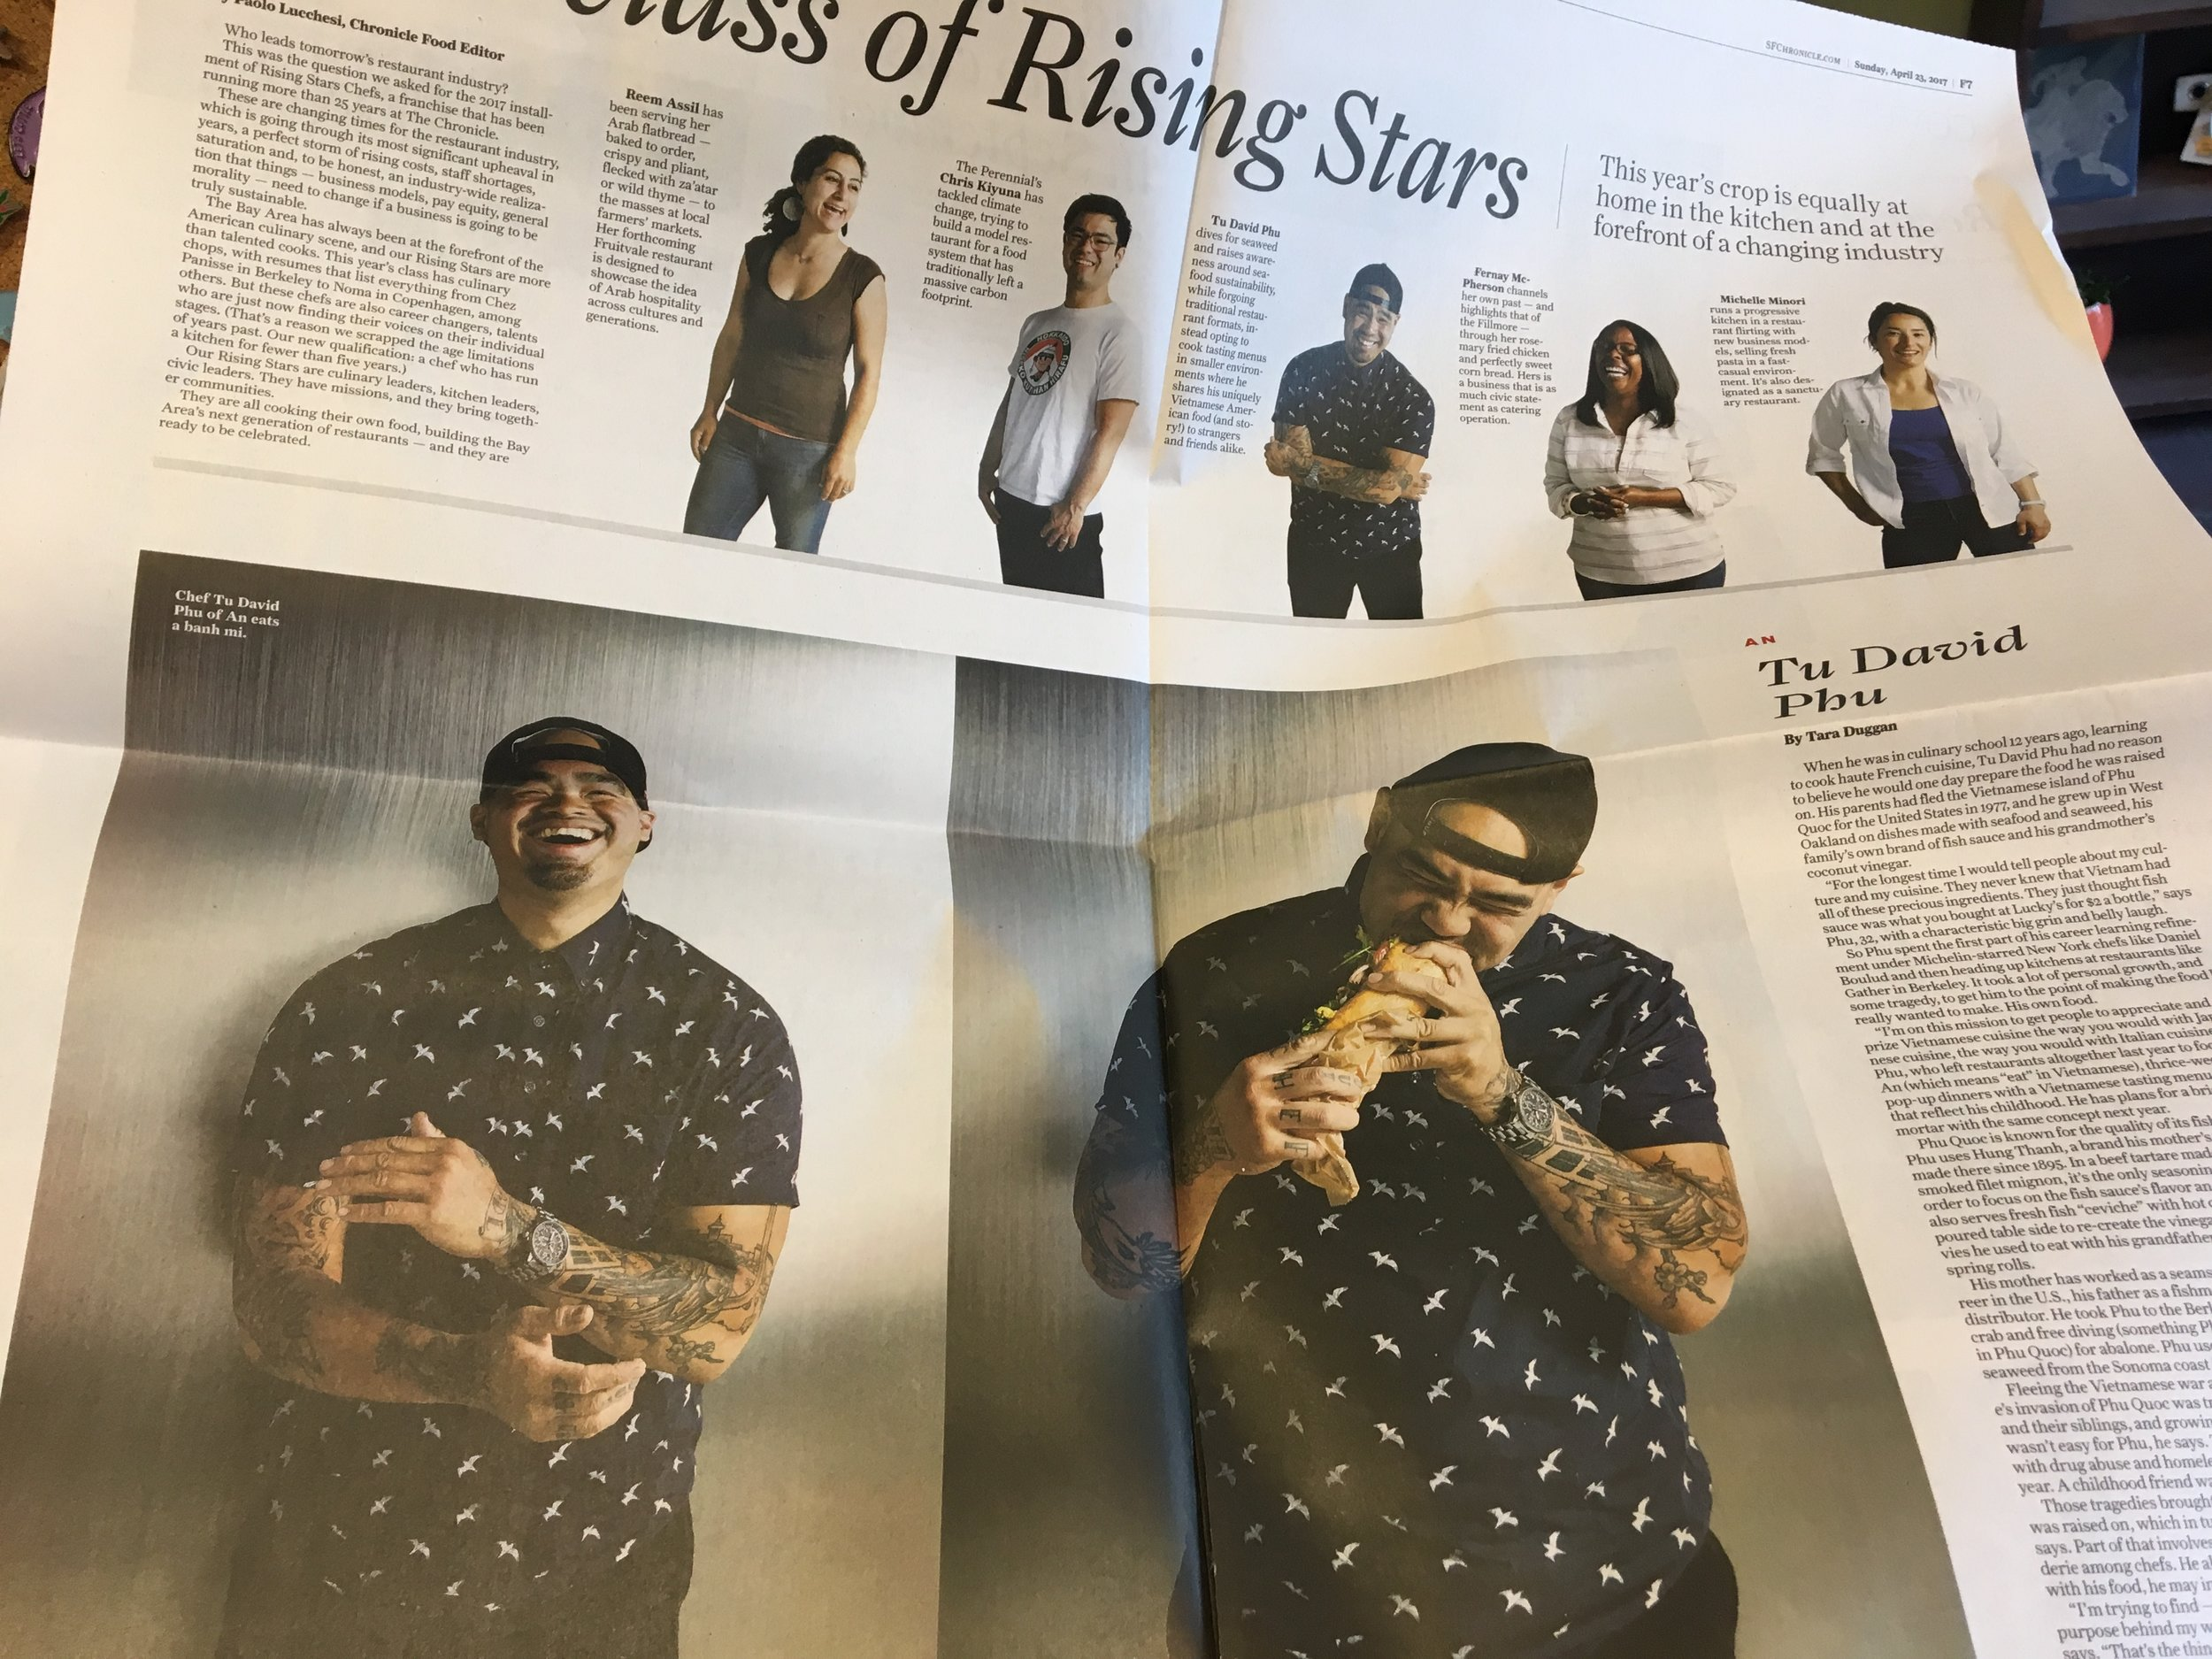 San Francisco Chronicle Rising Start Chefs